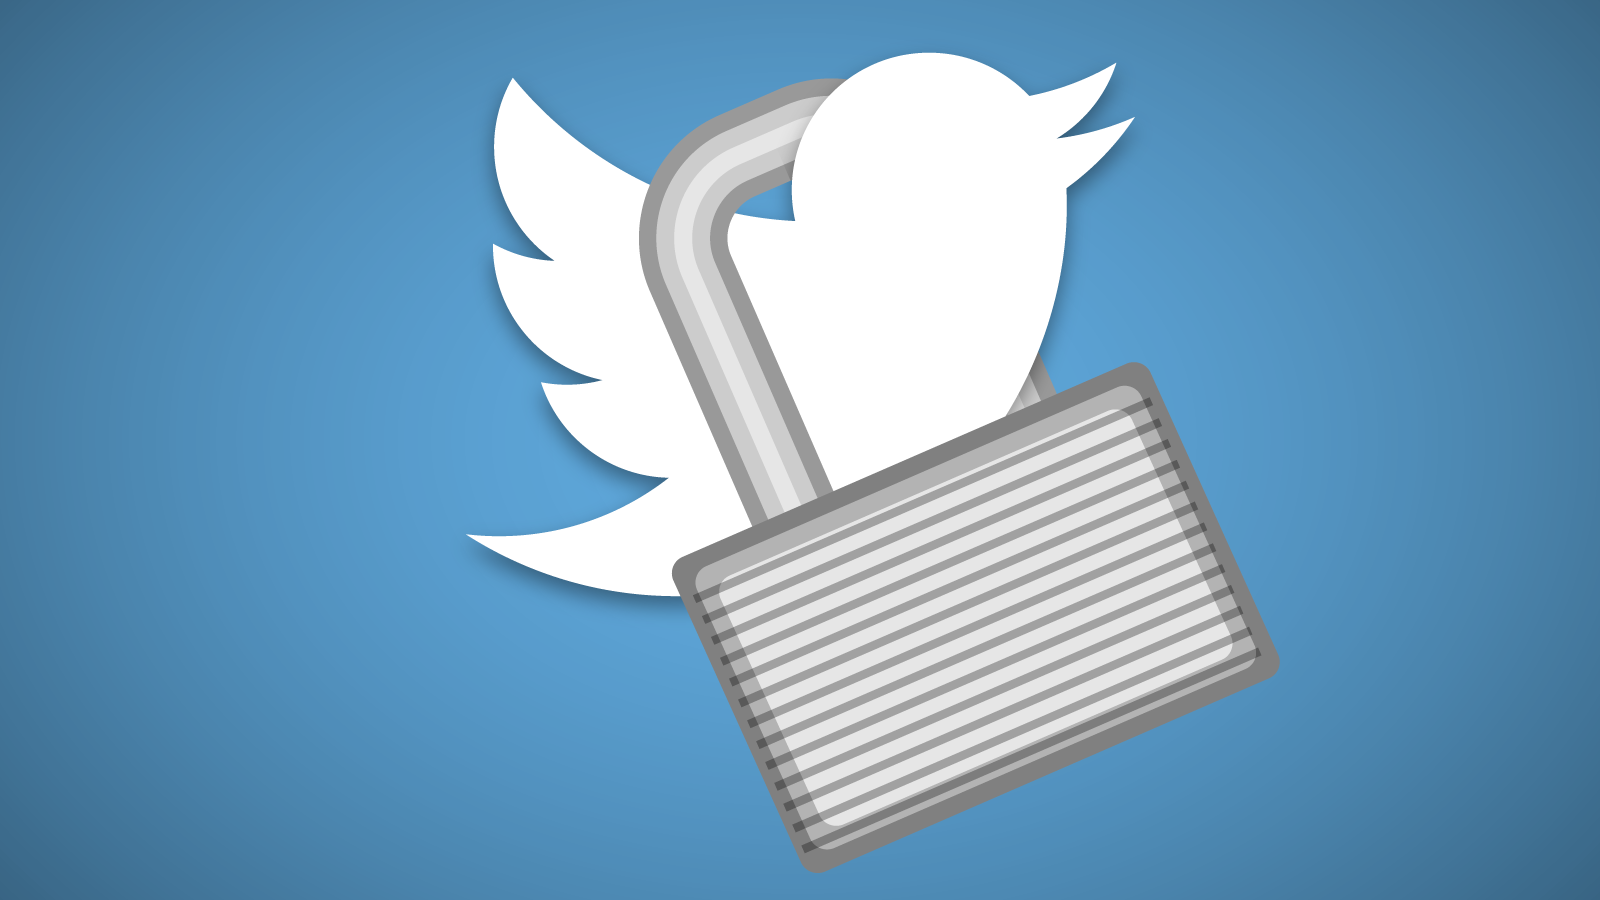 Twitter working on encrypted messaging feature